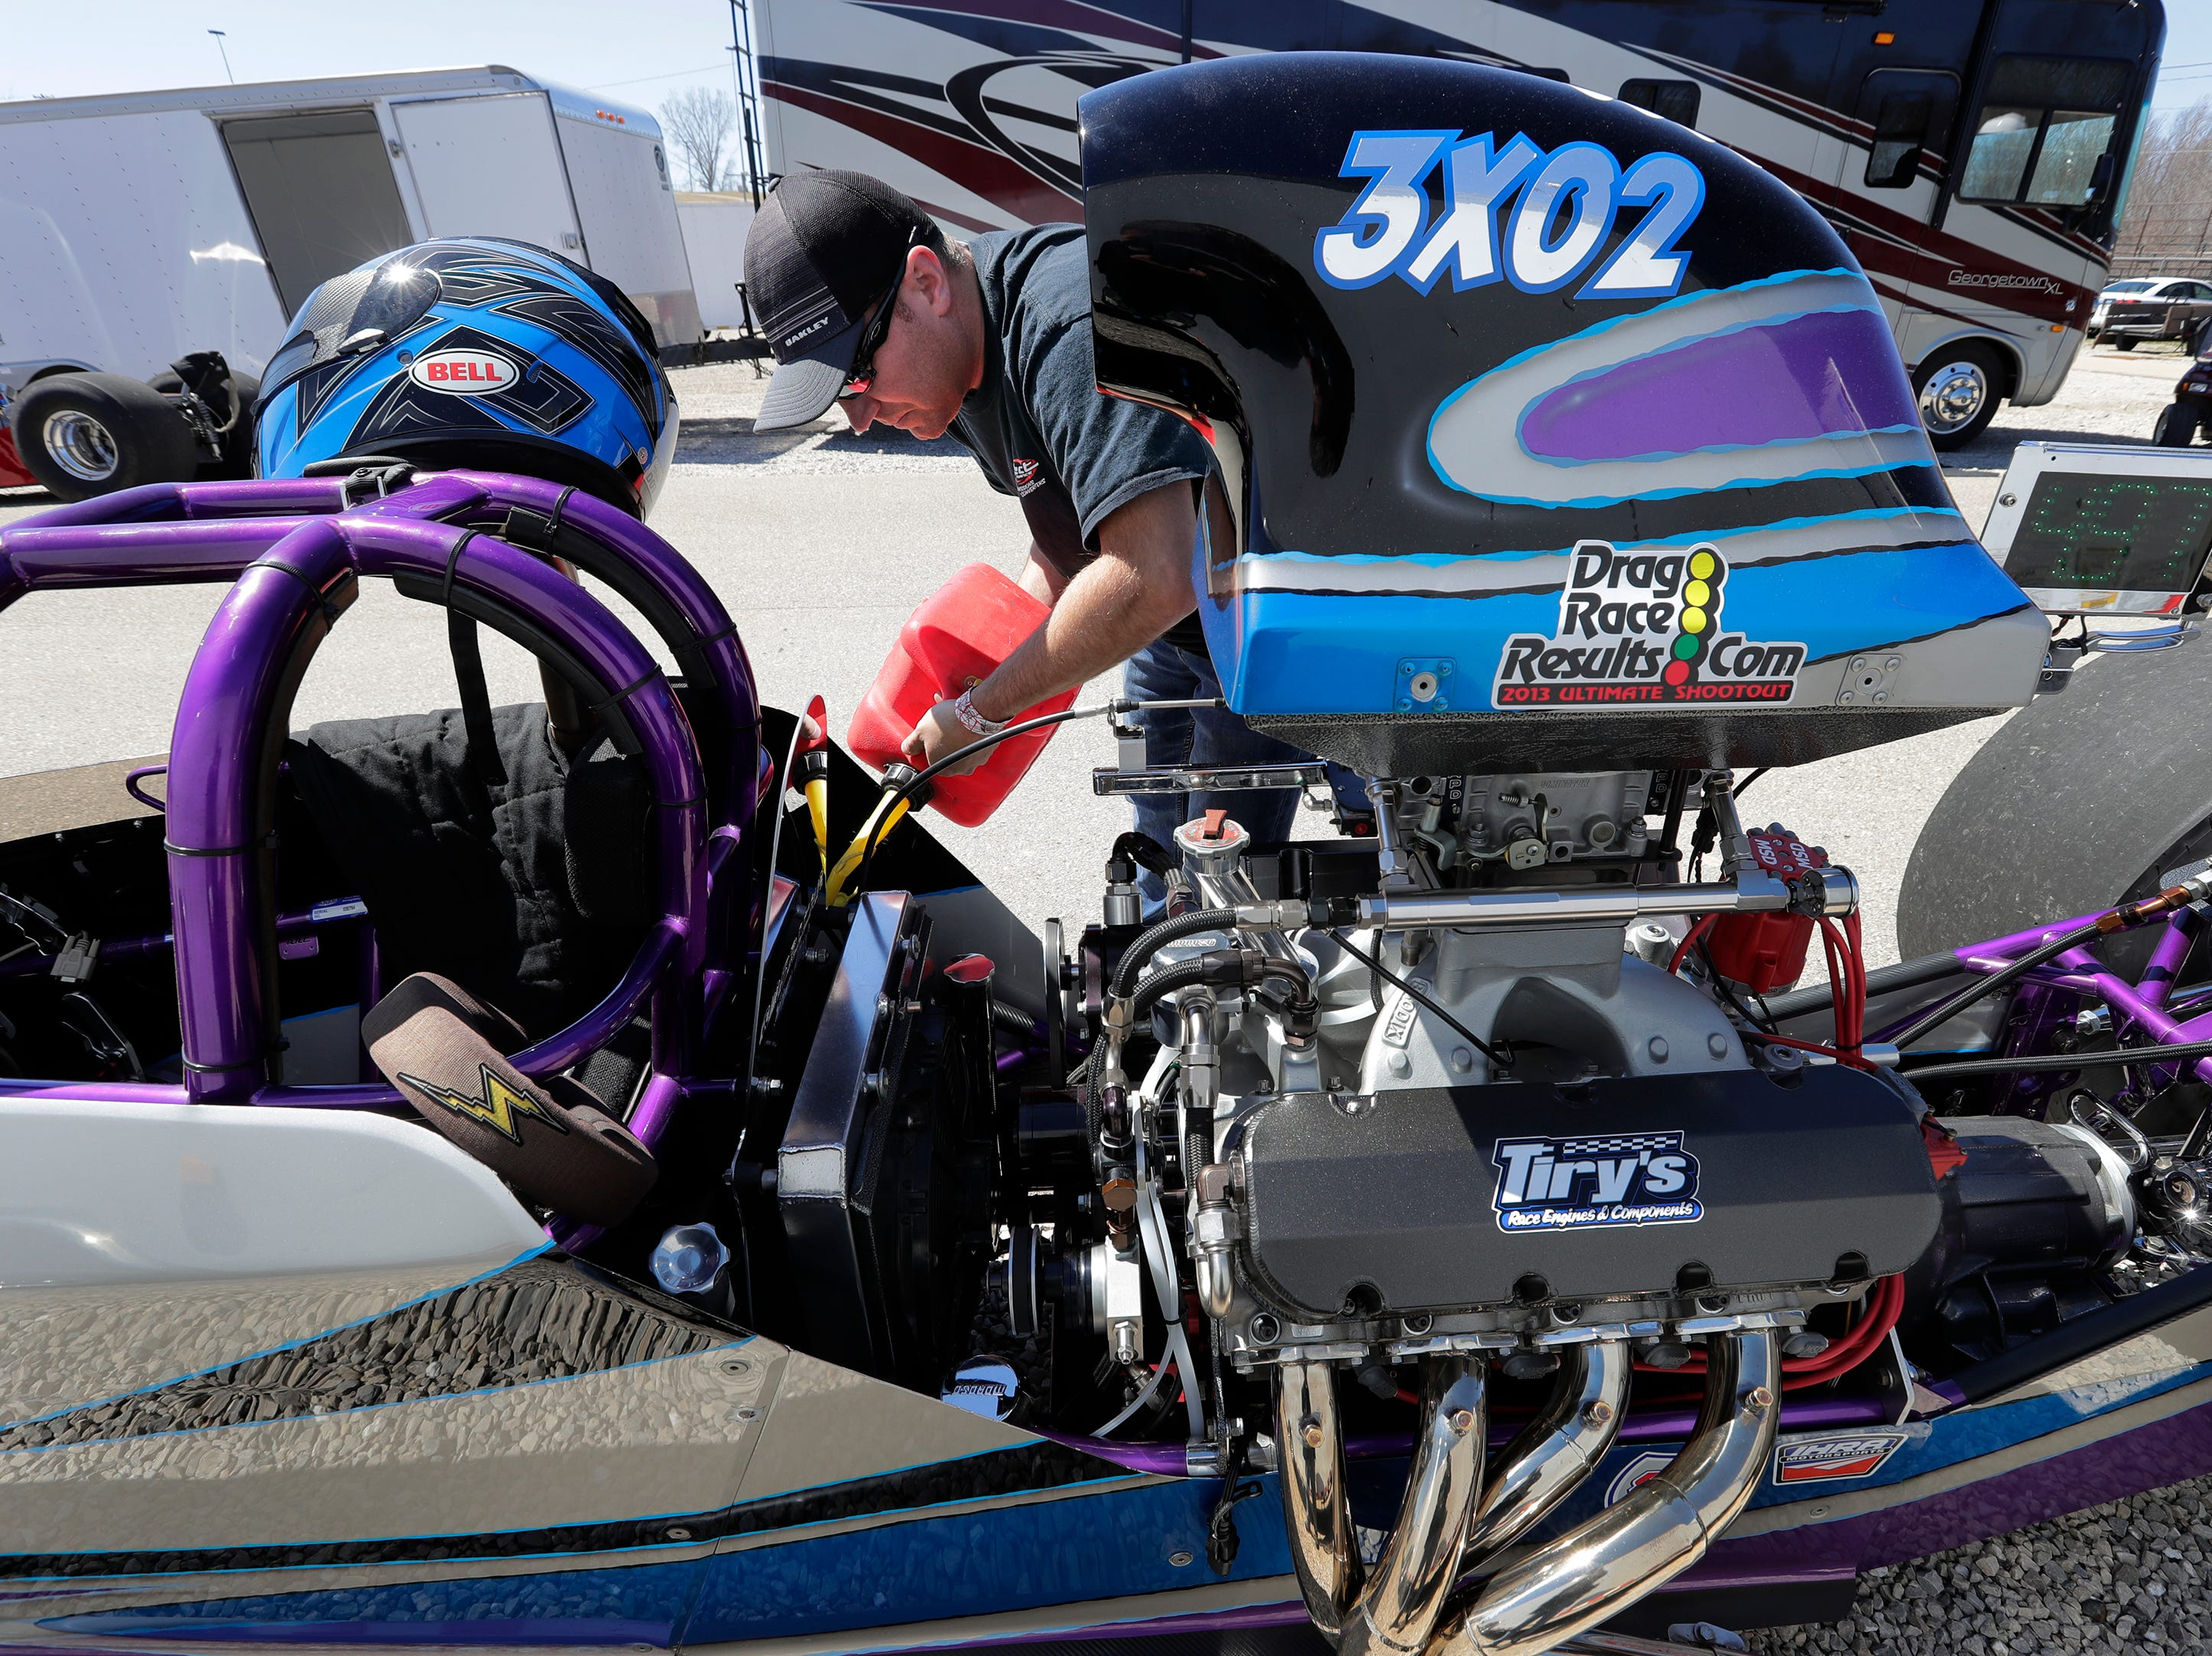 Derek Degnitz of Slinger prepares his dragster for a test run during the Wisconsin International Raceway Strip Test & Tune event Saturday, April 20, 2019, in Kaukauna, Wis. Drivers spent the day getting safety inspections, tune ups and test runs on the track for the upcoming season.